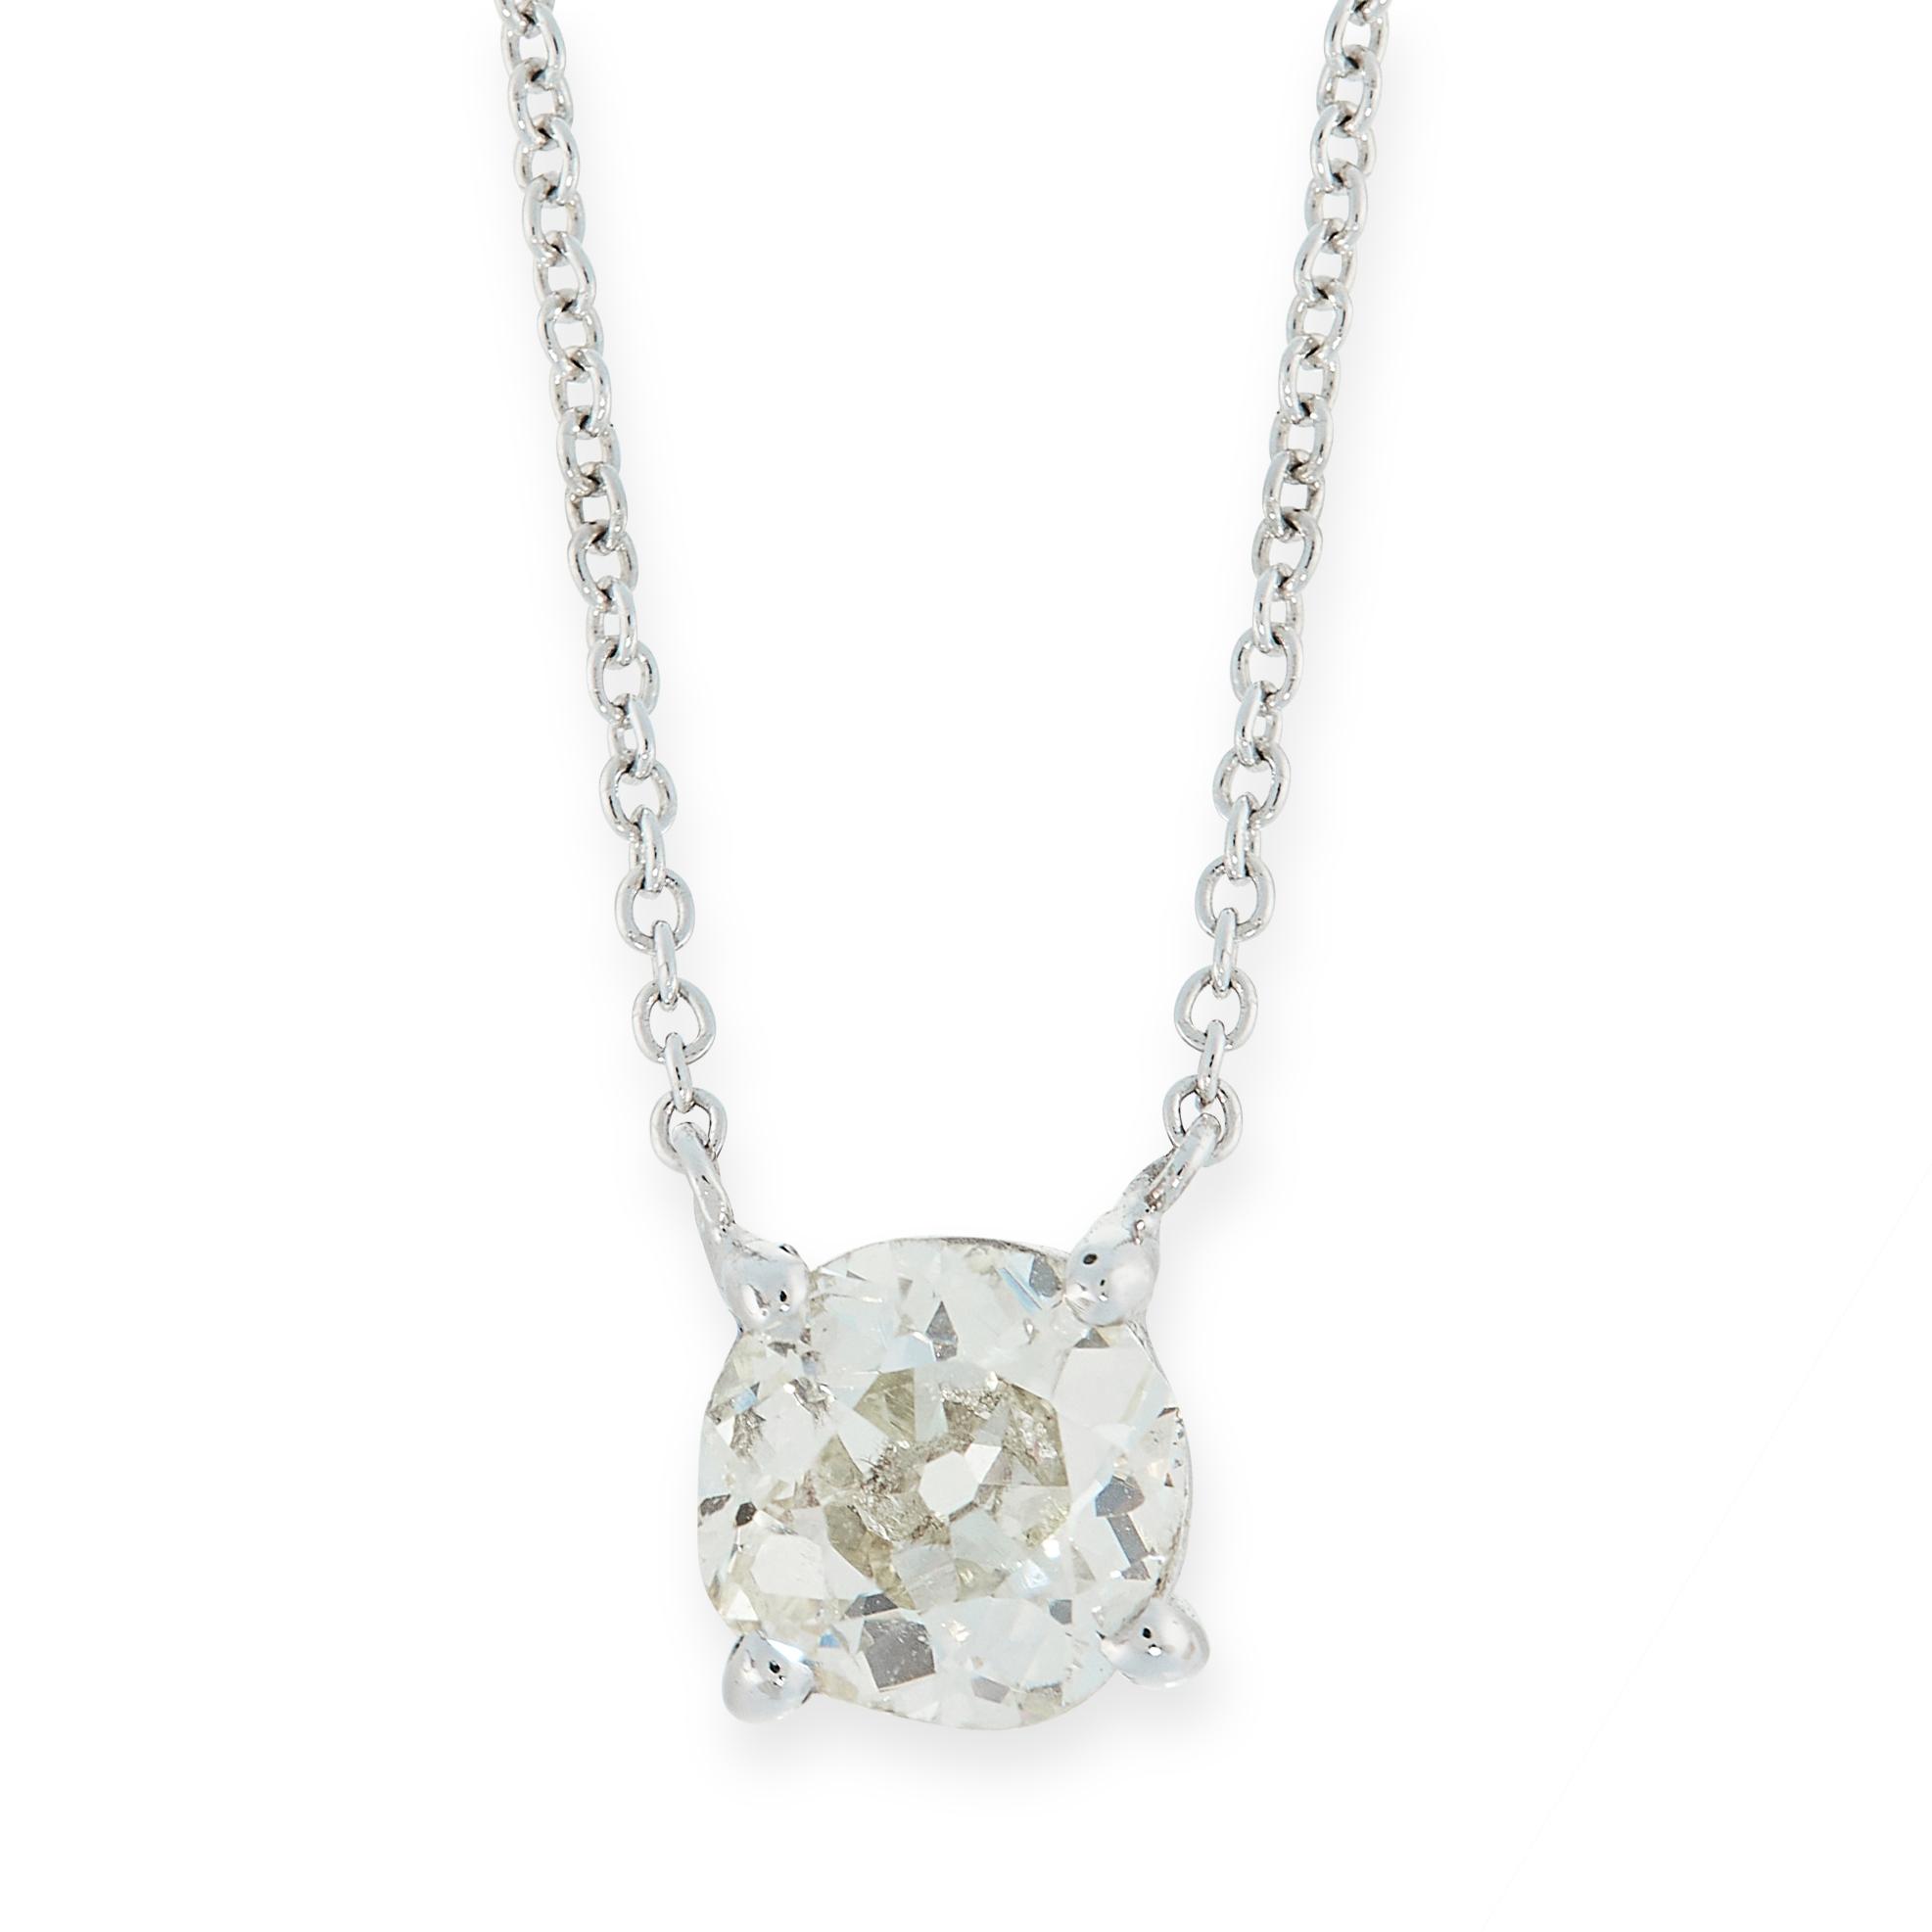 DIAMOND PENDANT NECKLACE set with an old cut diamond of approximately 1.0 carats within a chain,